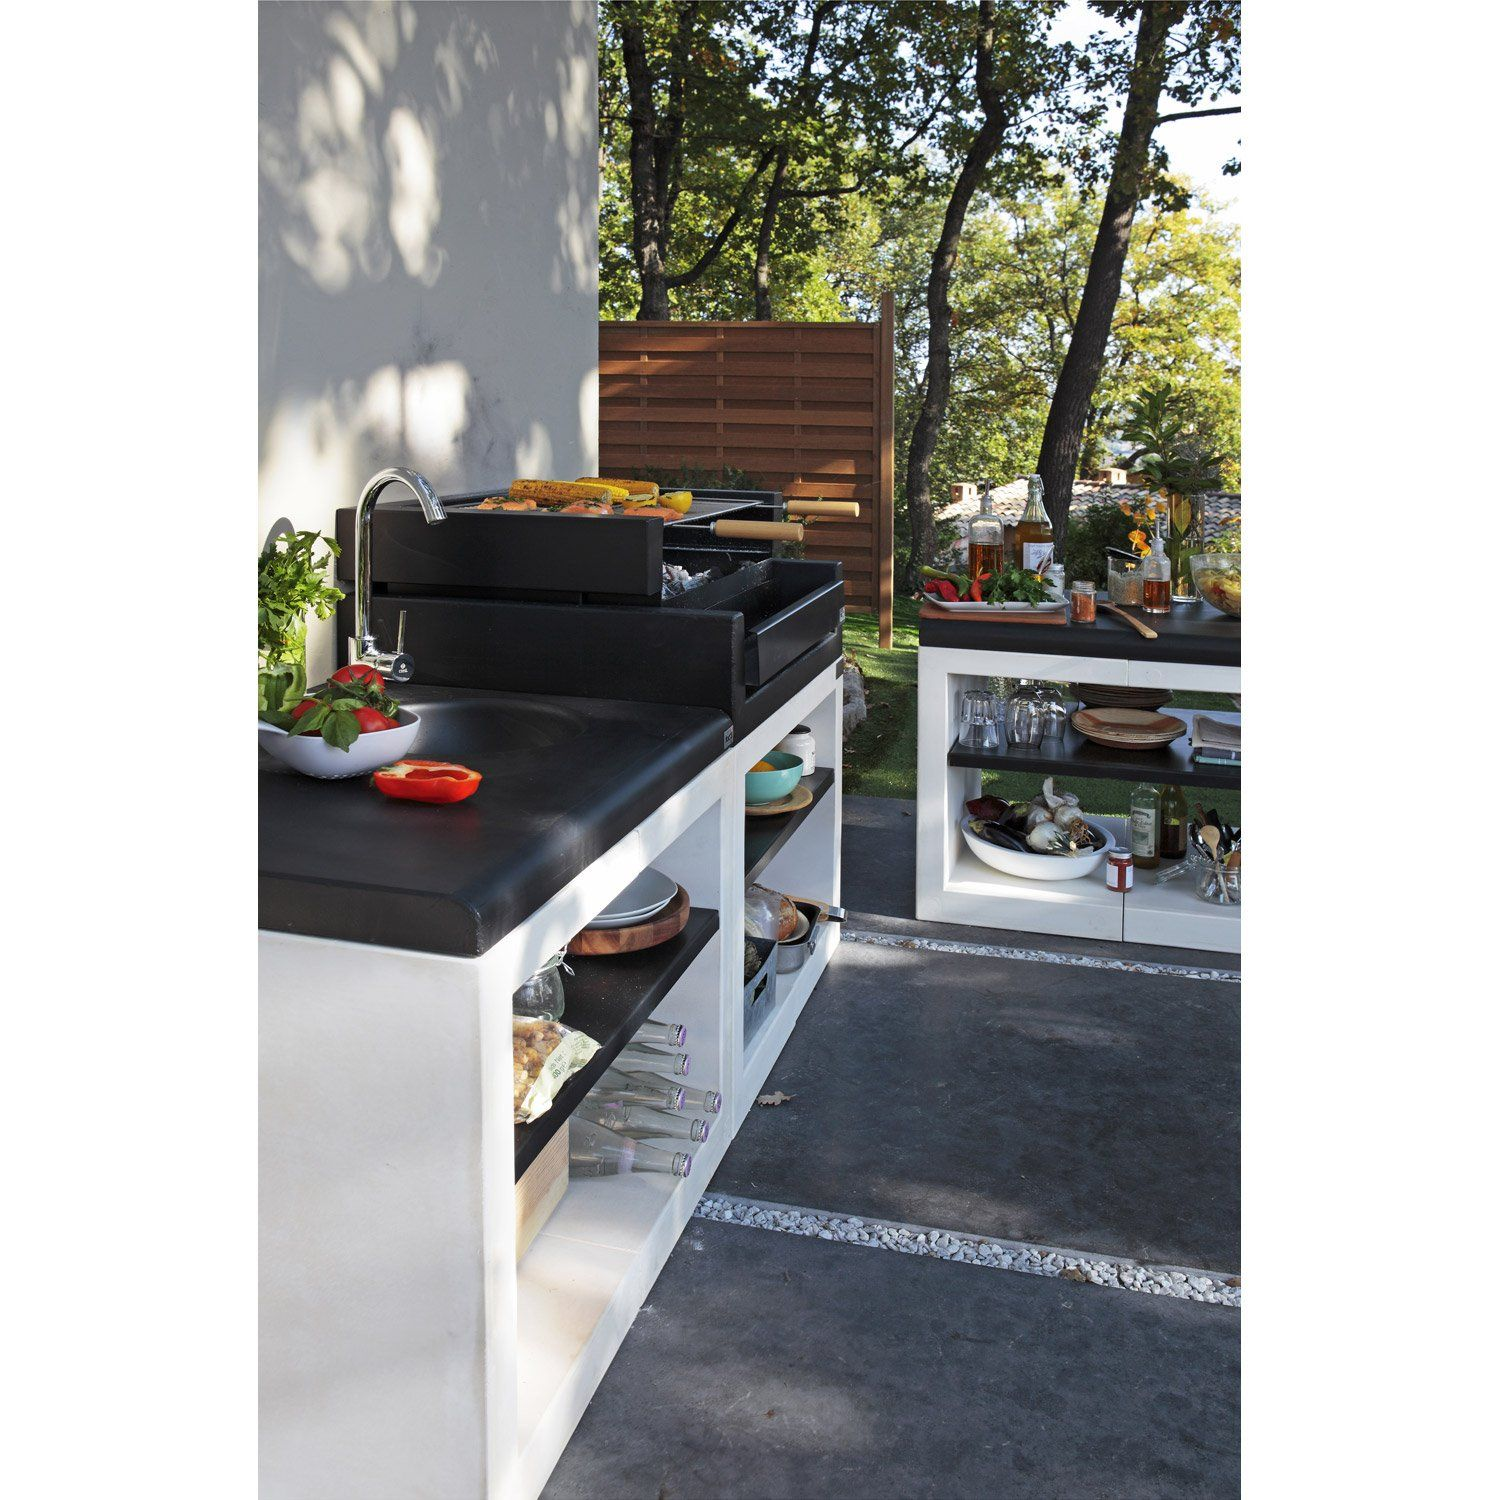 Barbecue Kitaway Grill L 63 X P 84 X H 101 Cm Leroy